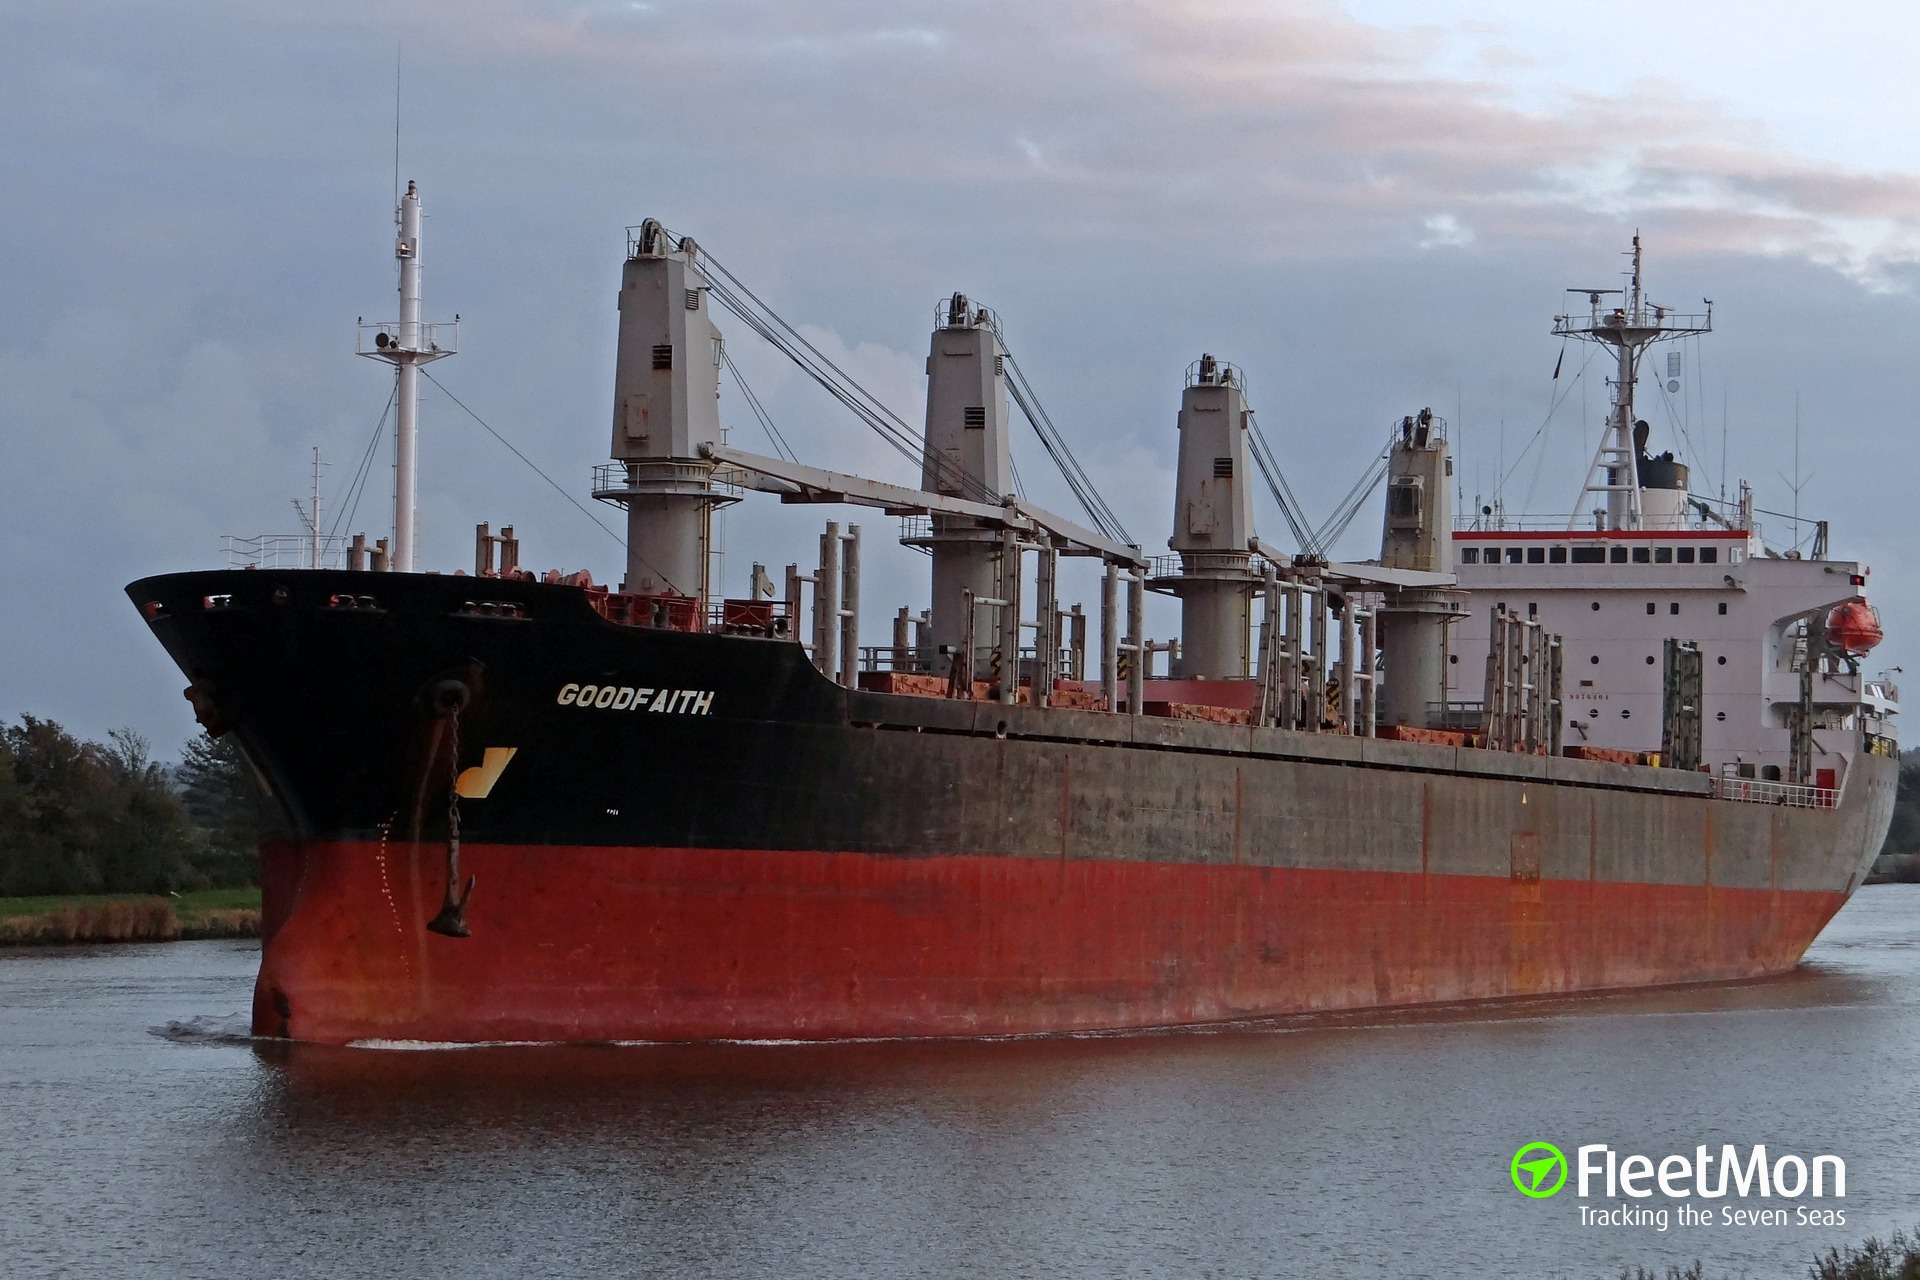 Bulk carrier Goodfaith aground, water ingress, evacuation hampered by a storm